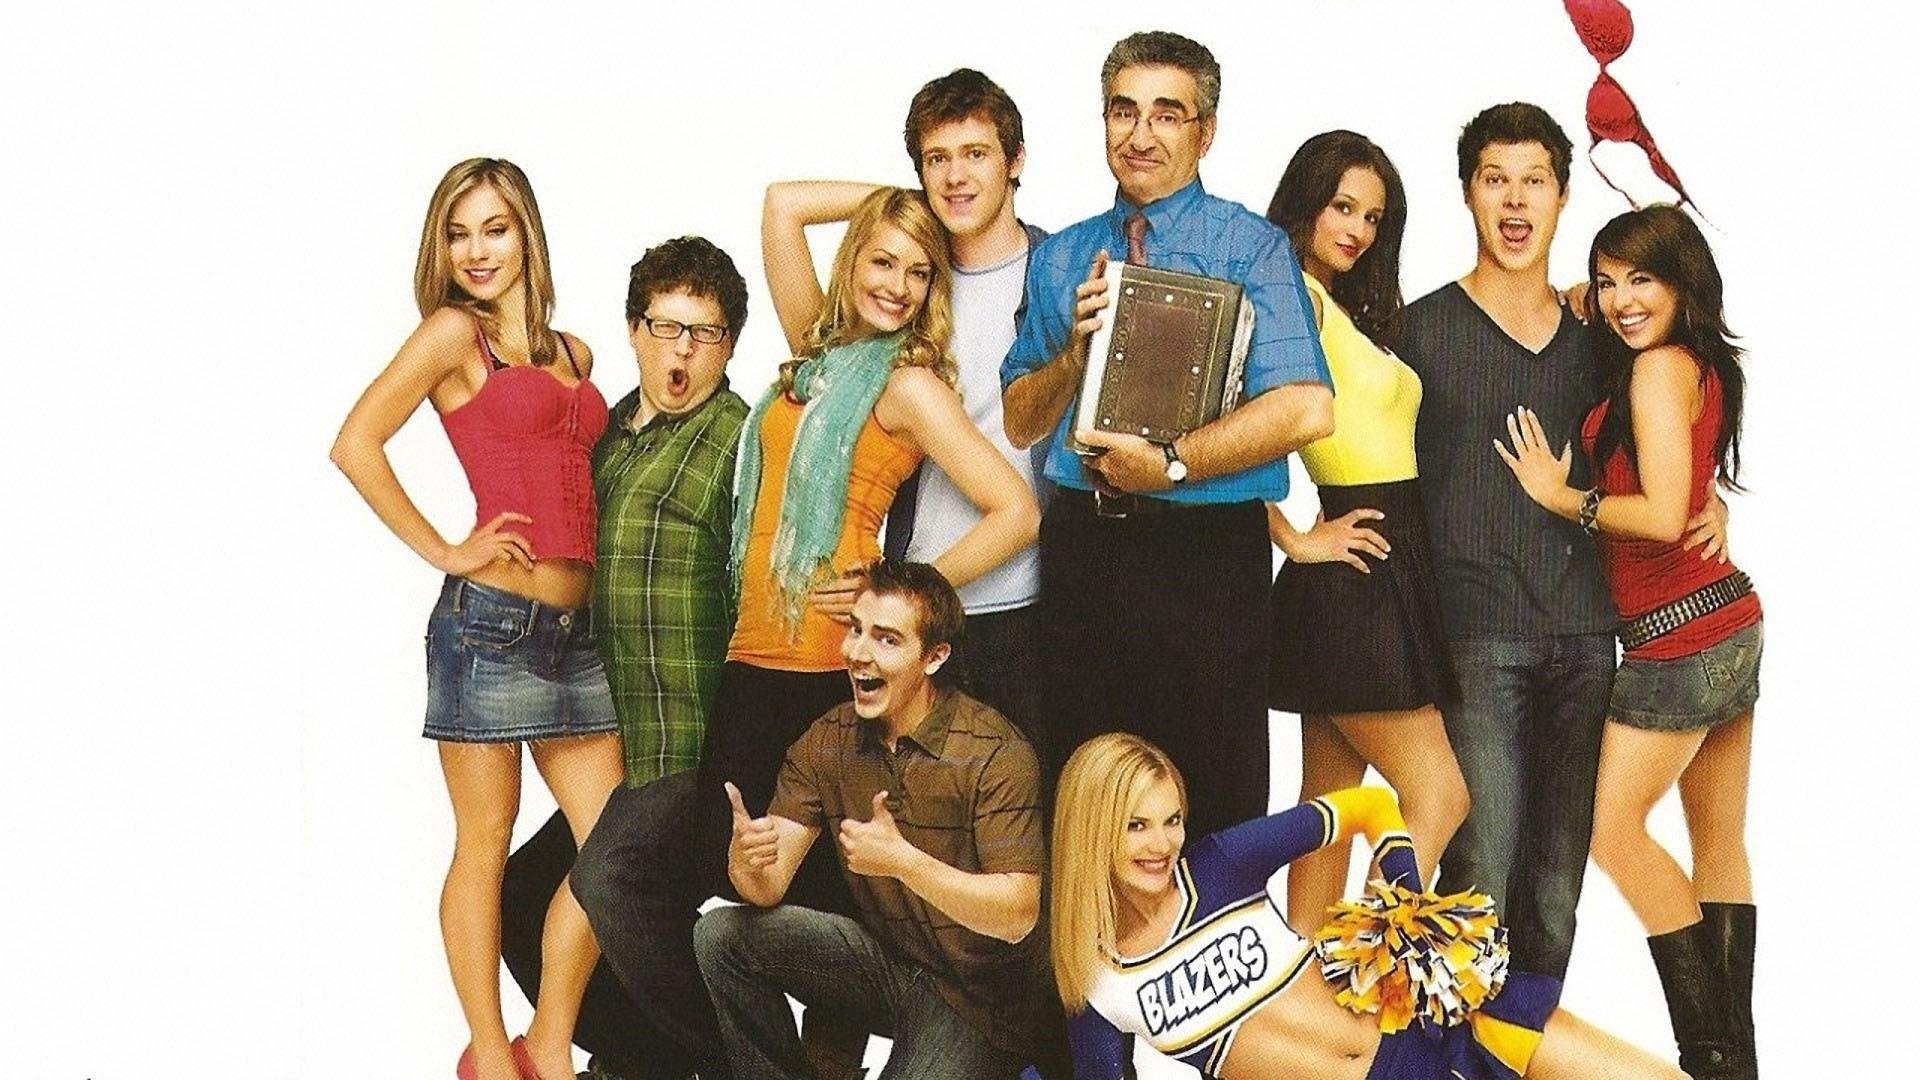 BOOK OF LOVE American Pie comedy romance f wallpaper background